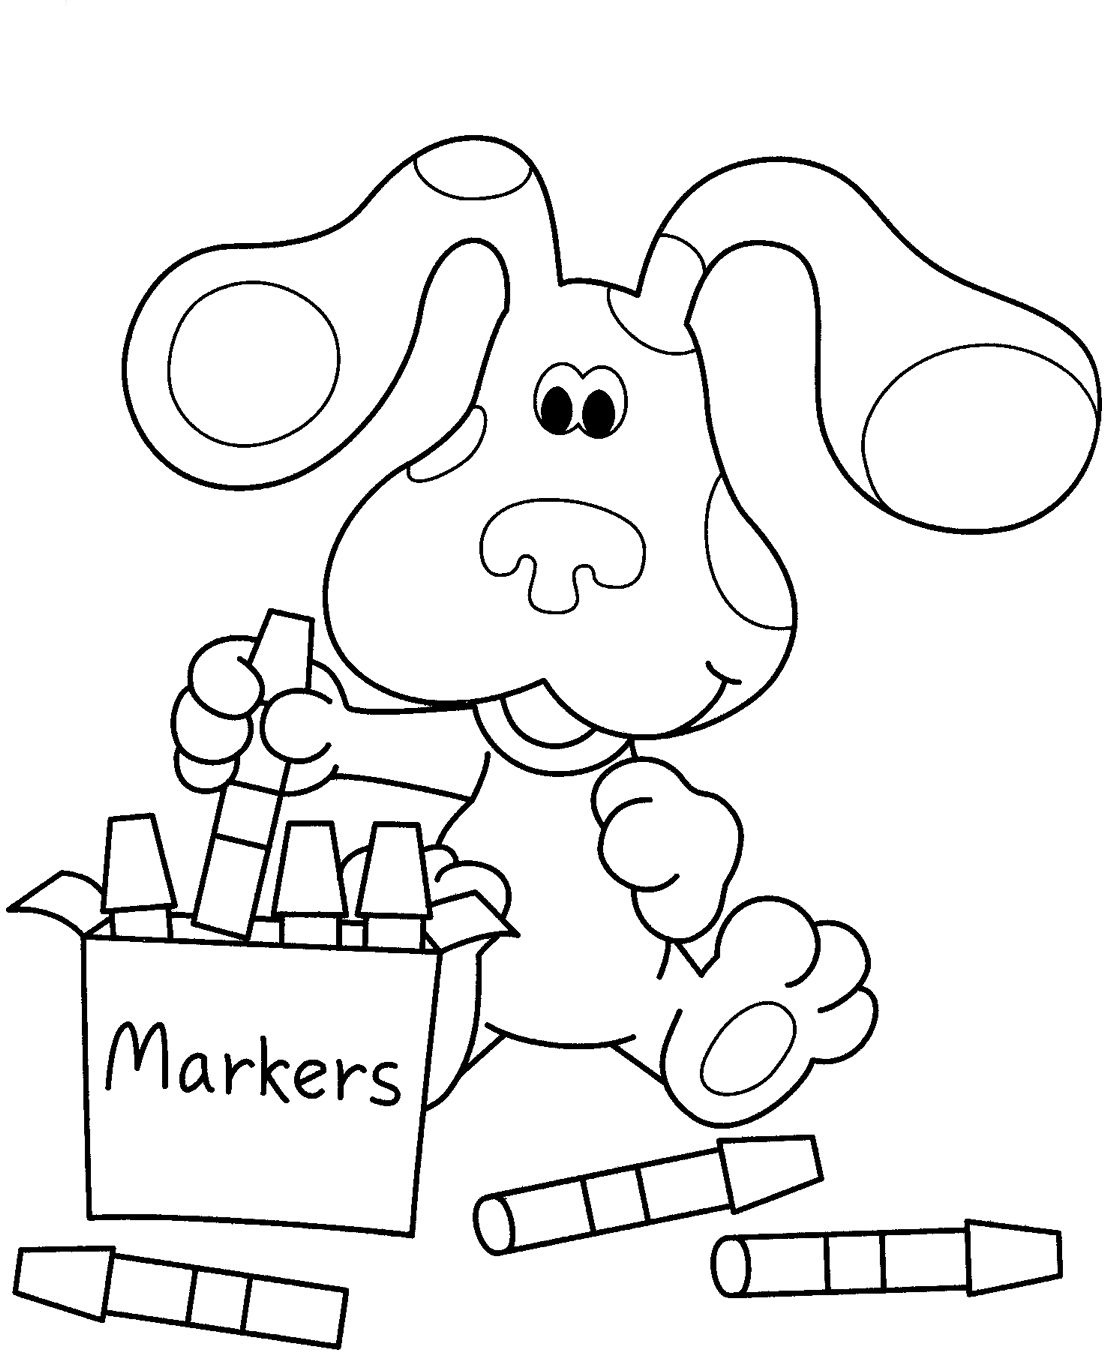 Salt And Pepper Coloring Pages At Getcolorings